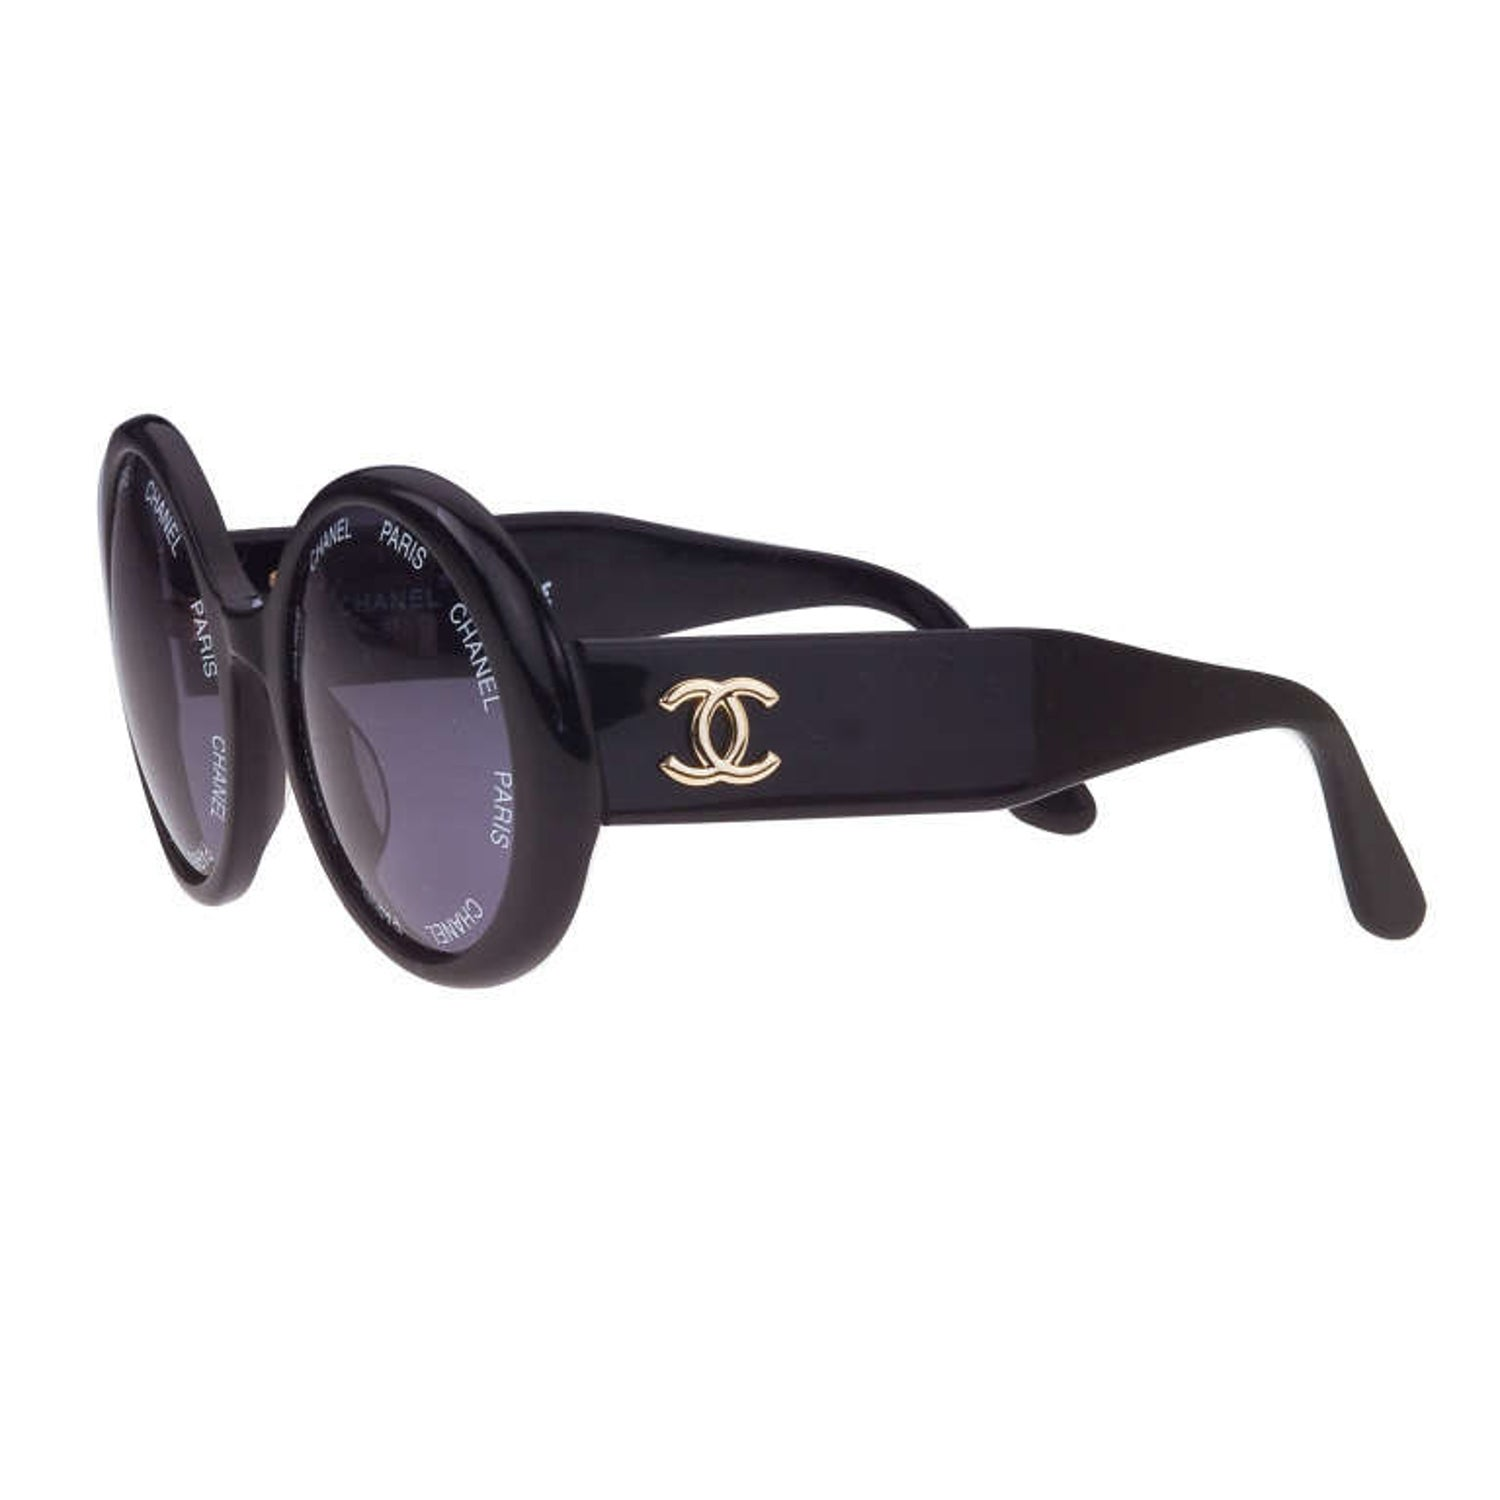 141ccccd75 Vintage Chanel  Chanel Paris  Logo Black Sunglasses Large at 1stdibs